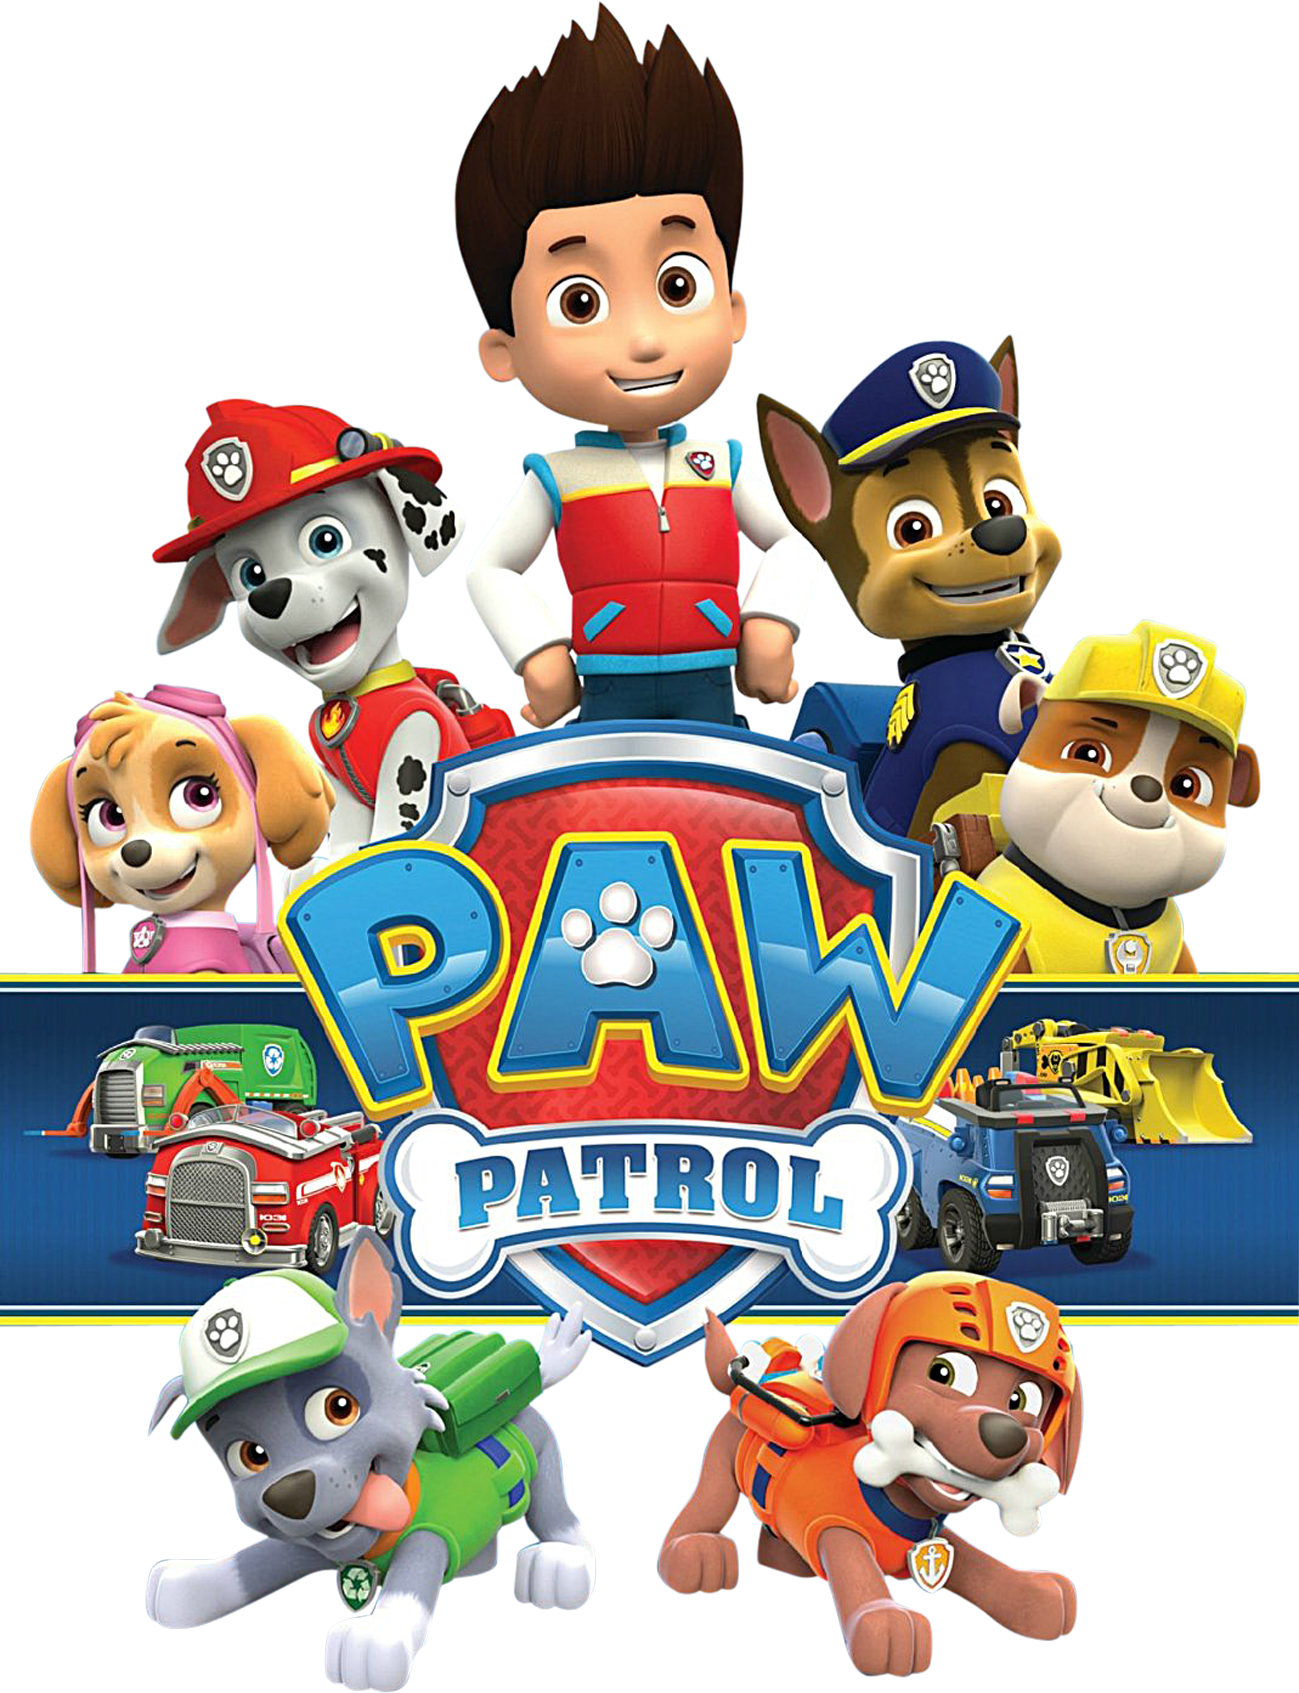 Paw patrol clipart to print clip art royalty free Paw Patrol Birthday Clipart at GetDrawings.com | Free for personal ... clip art royalty free